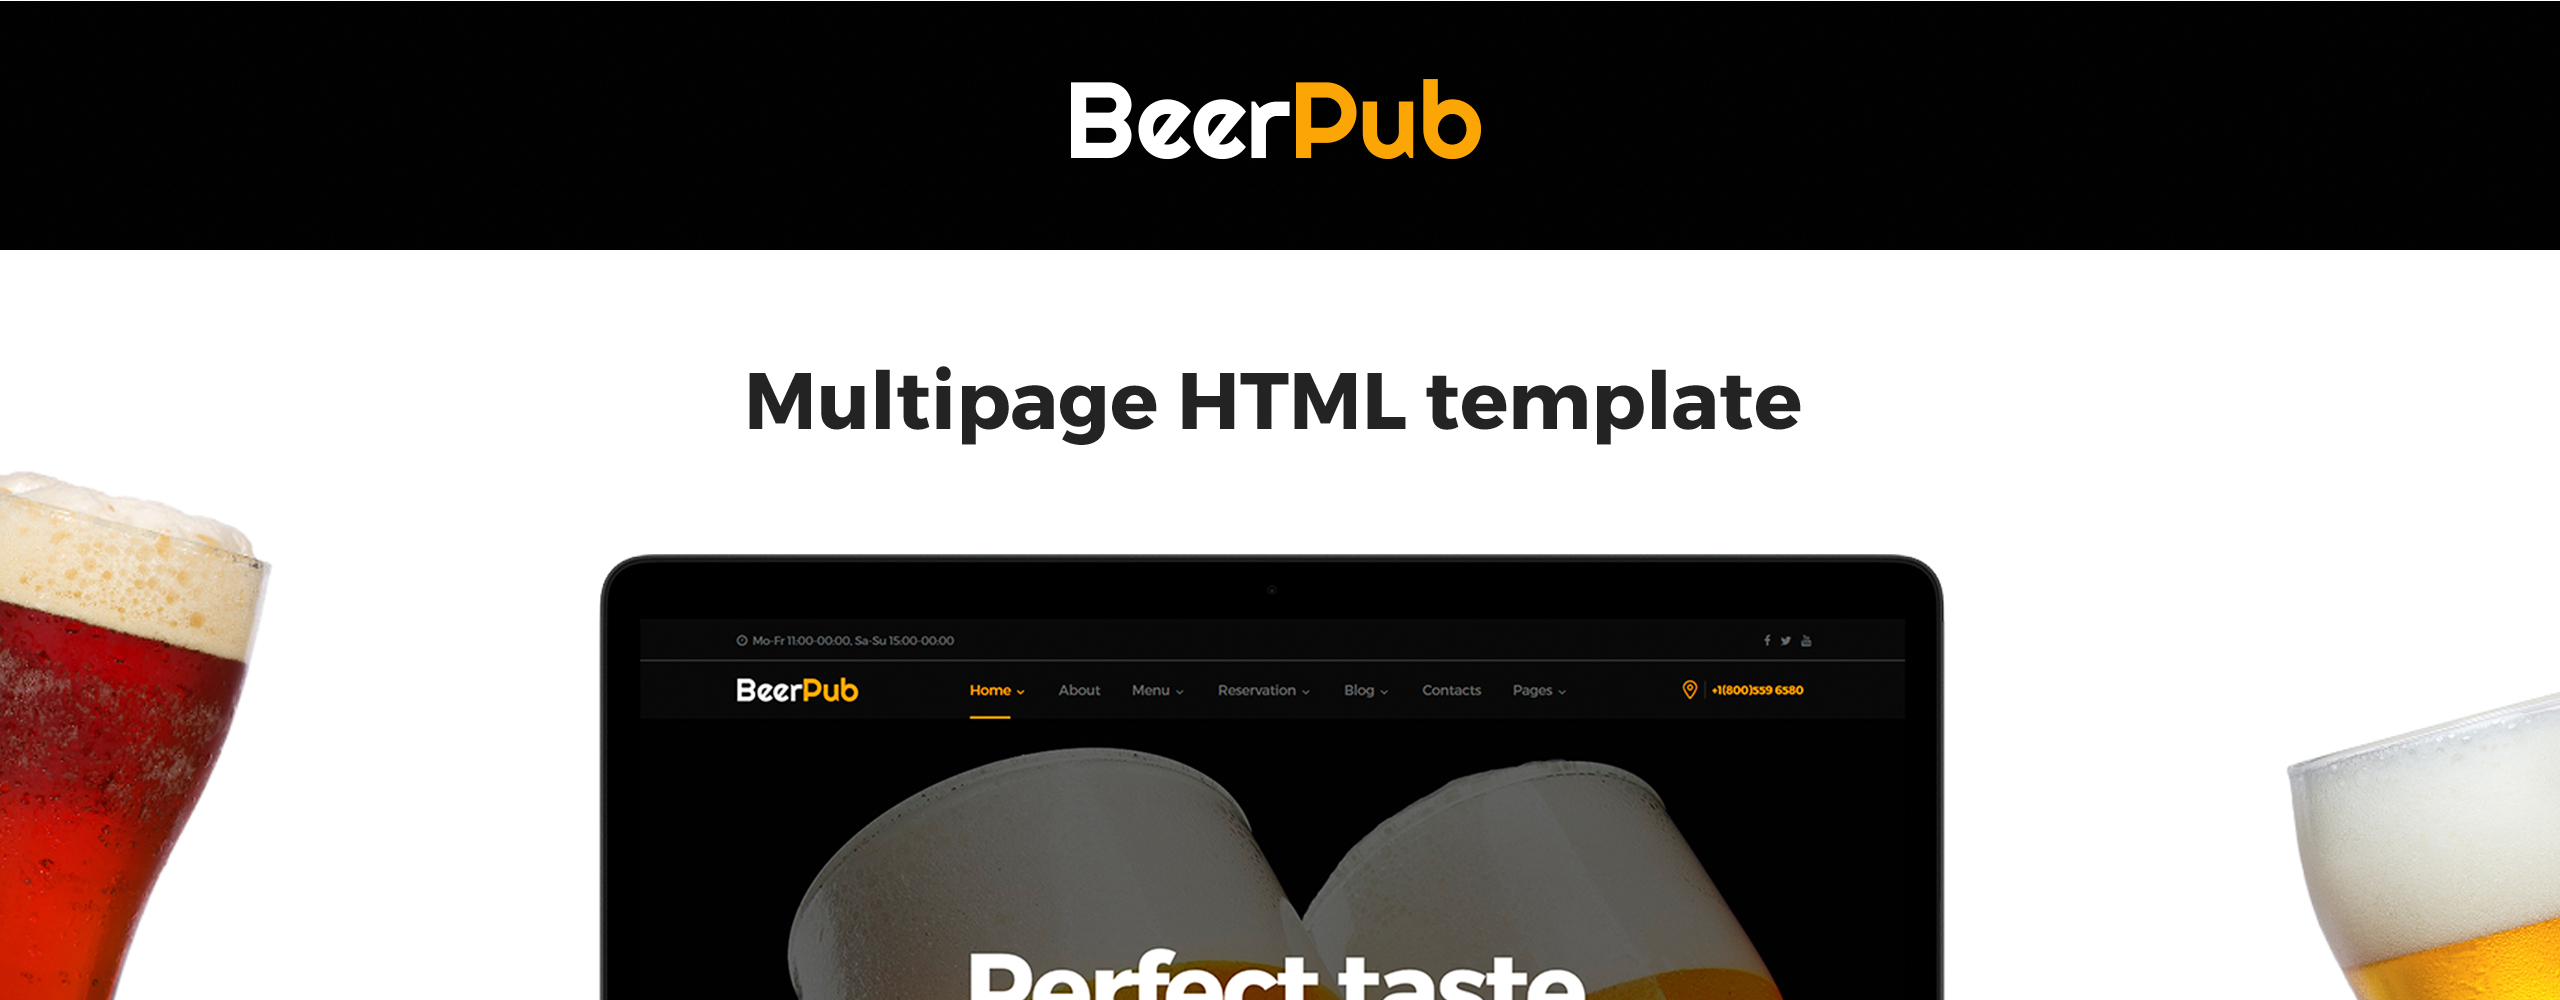 BeerPub - Food and Restaurant Multipage Website Template